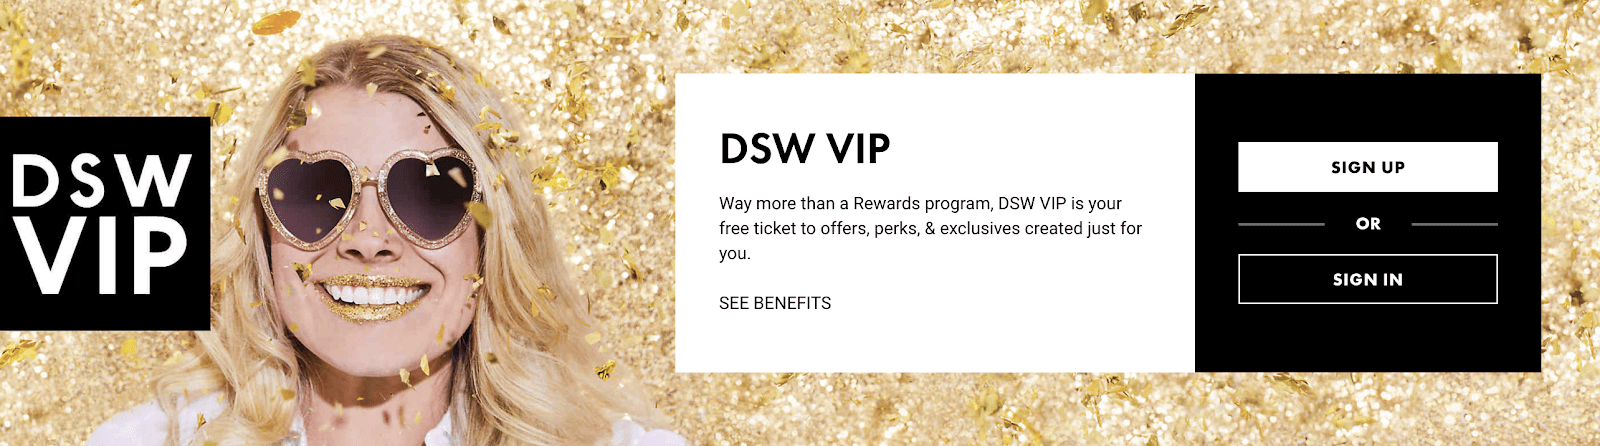 DSW limits access to double and triple point events to gold and elite tier members, creating a desire in people to rank up.